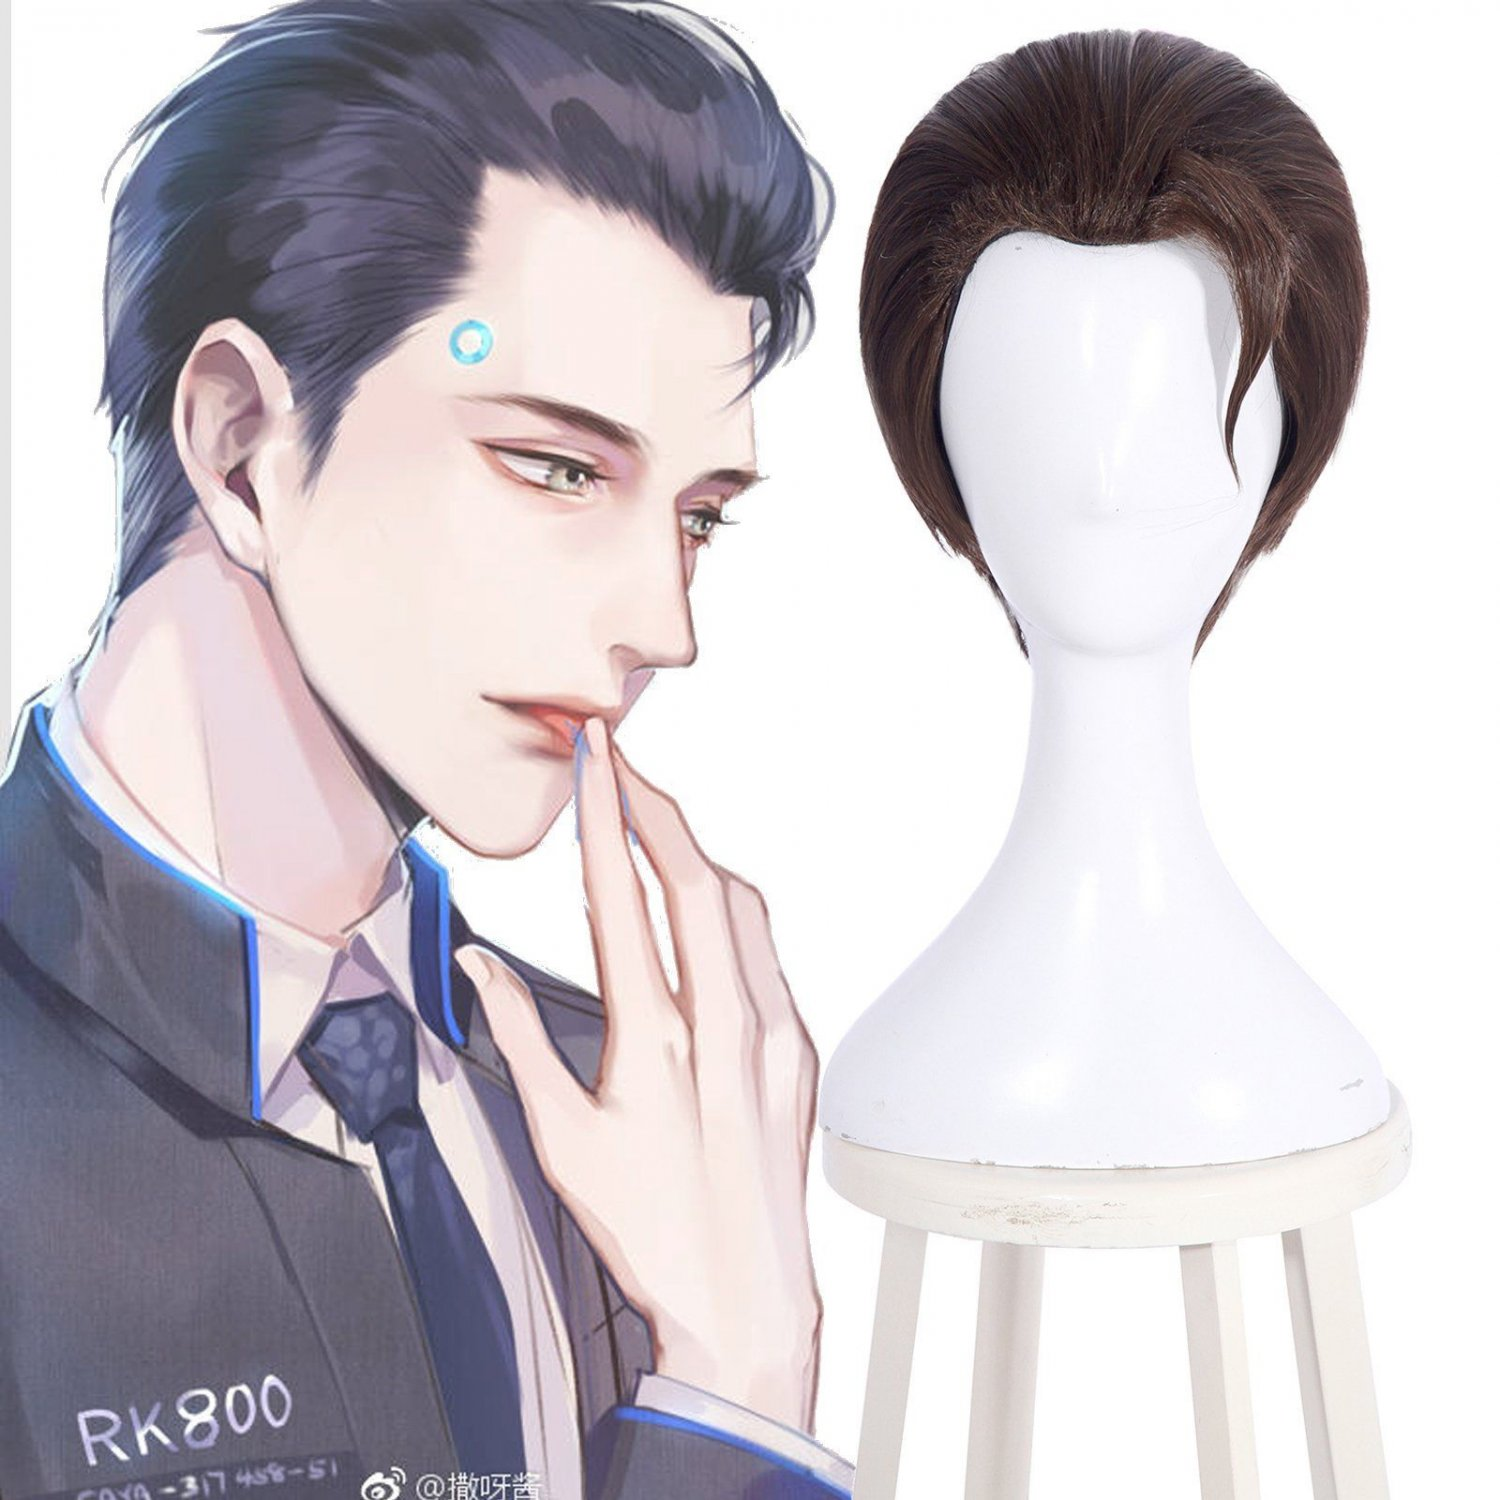 Detroit: Become Connor RK800 Cosplay Wig Short Brown Straight Styled Men's Hair